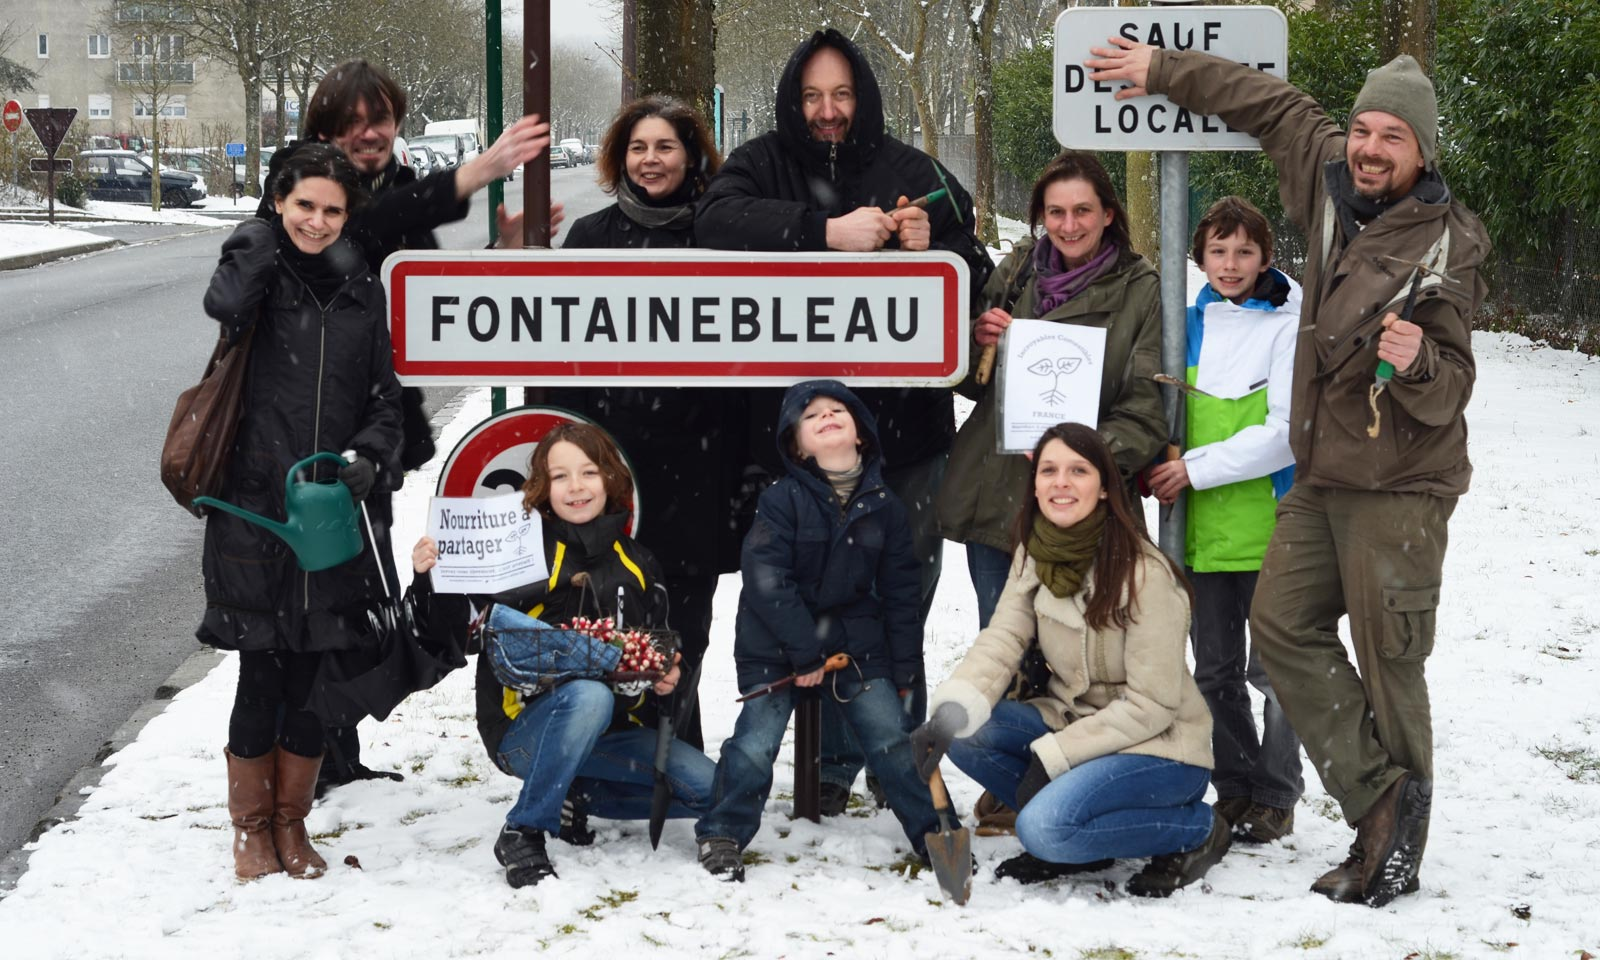 c549_incredible_edible_todmorden_france_fontainebleau_incroyables_comestibles_w1600